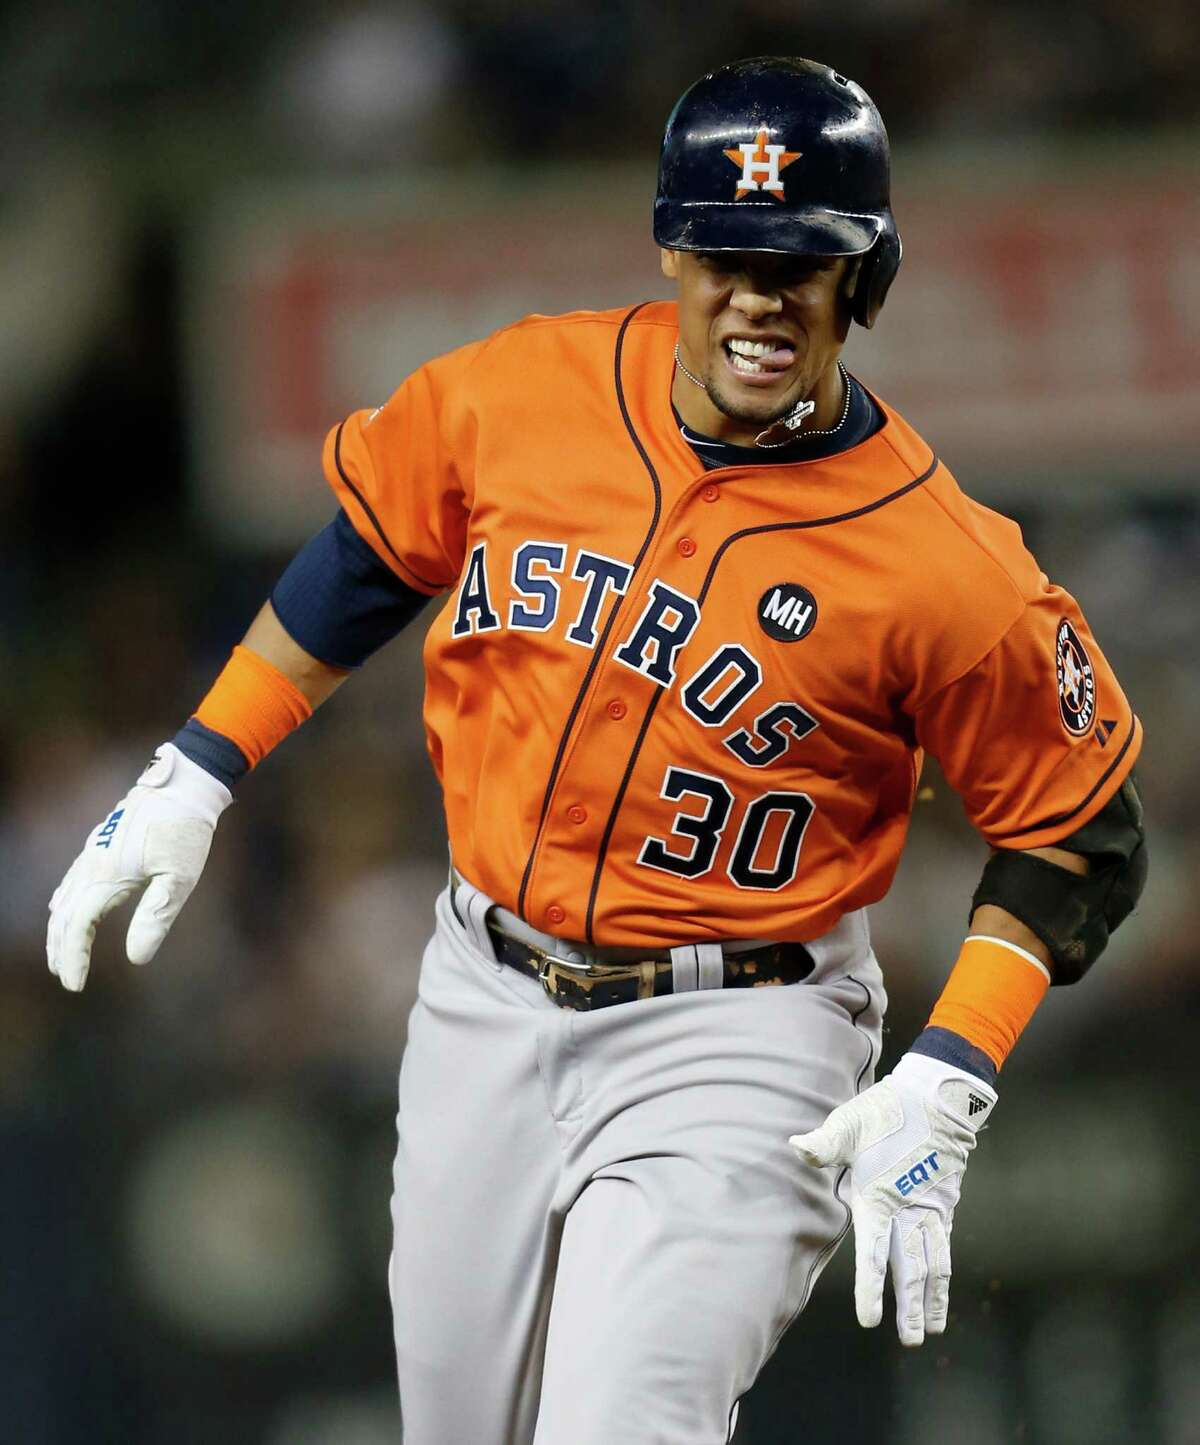 Carlos Gomez enjoys a happy romp around the bases after the Astros' center fielder slugged a solo home run in the fourth inning Tuesday night.